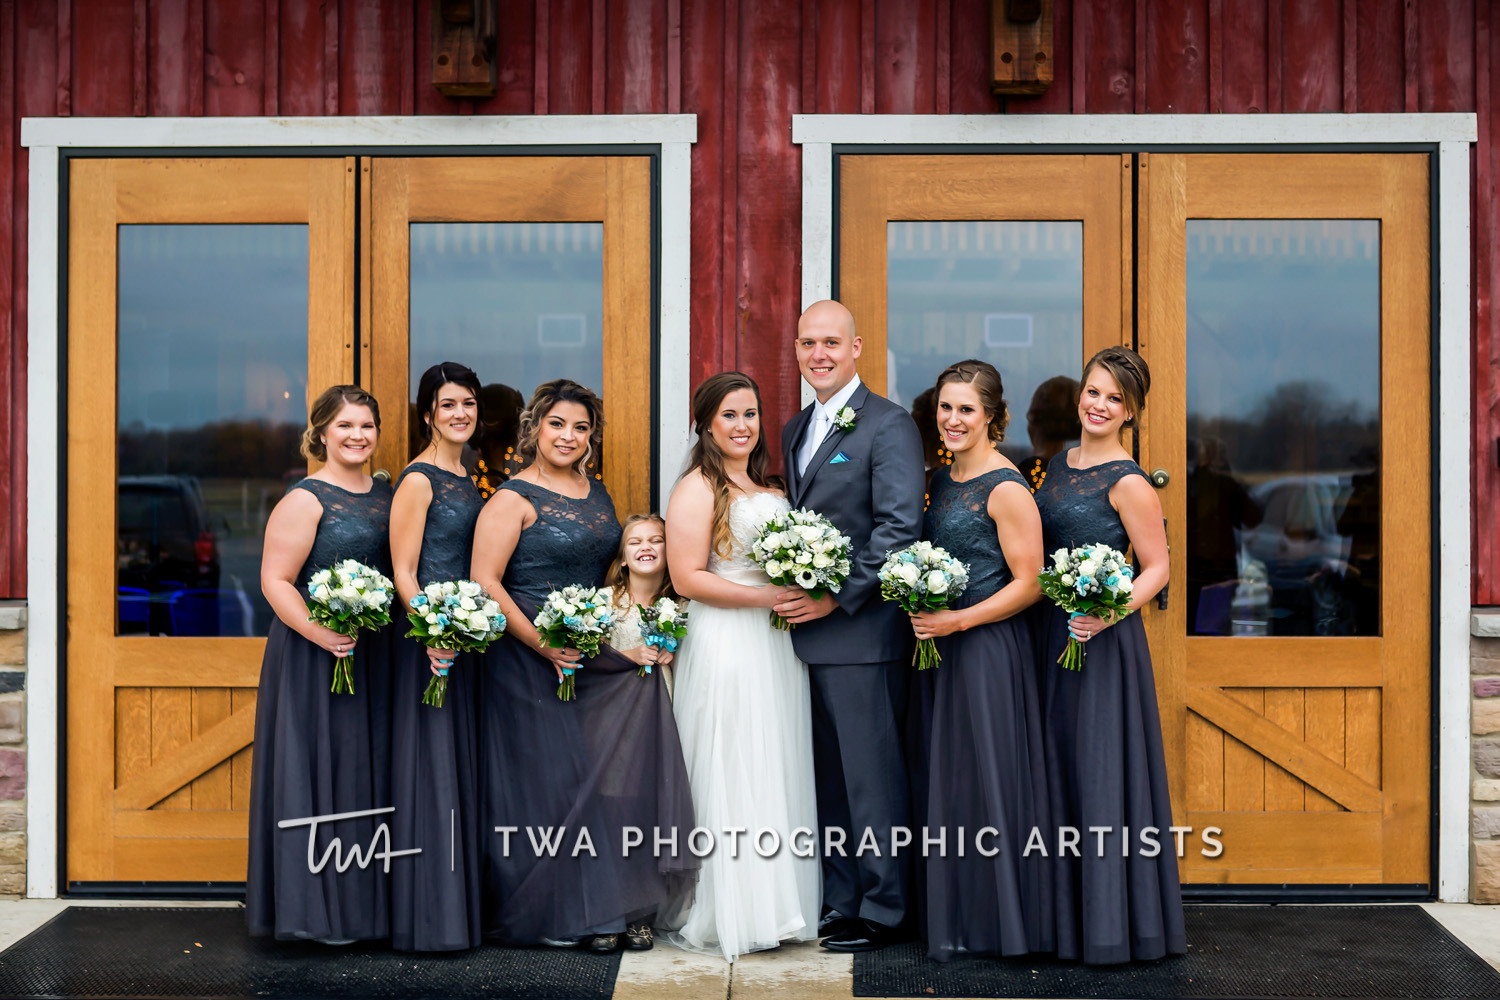 Chicago-Wedding-Photographer-TWA-Photographic-Artists-County-Line-Orchard_Bomba_Purcell_MiC_DR-0174